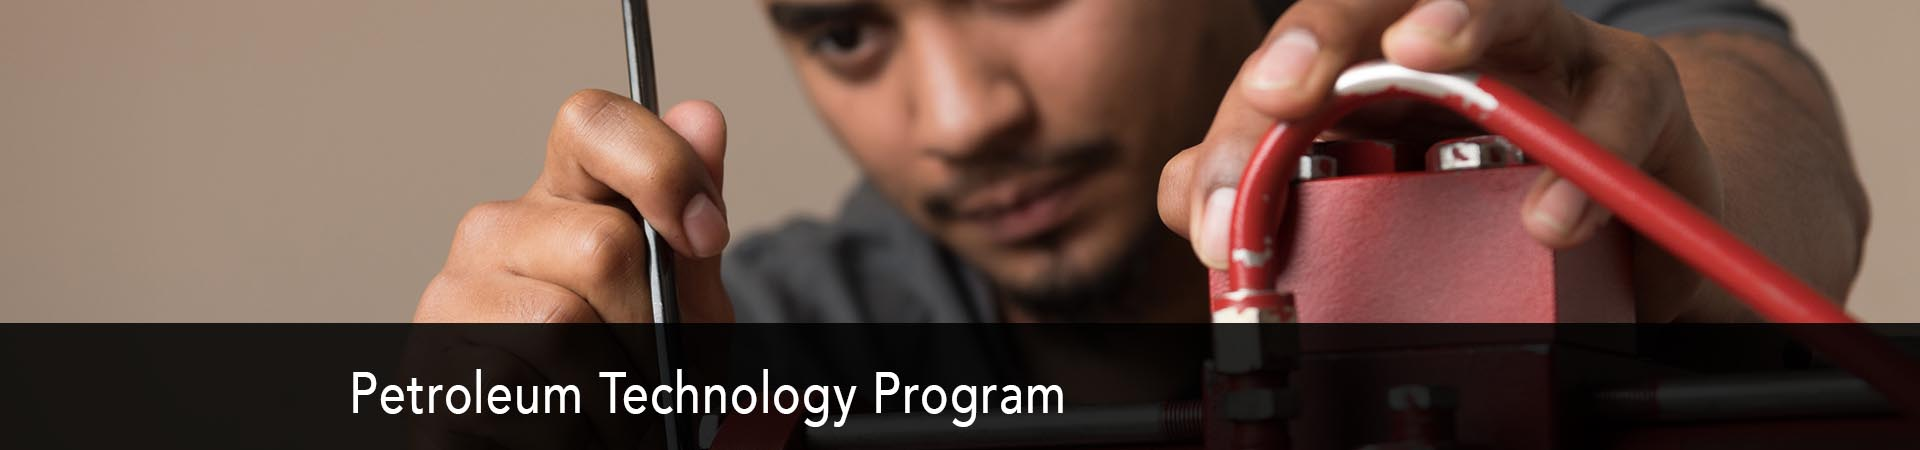 Explore the Petroleum Technology Program at NC